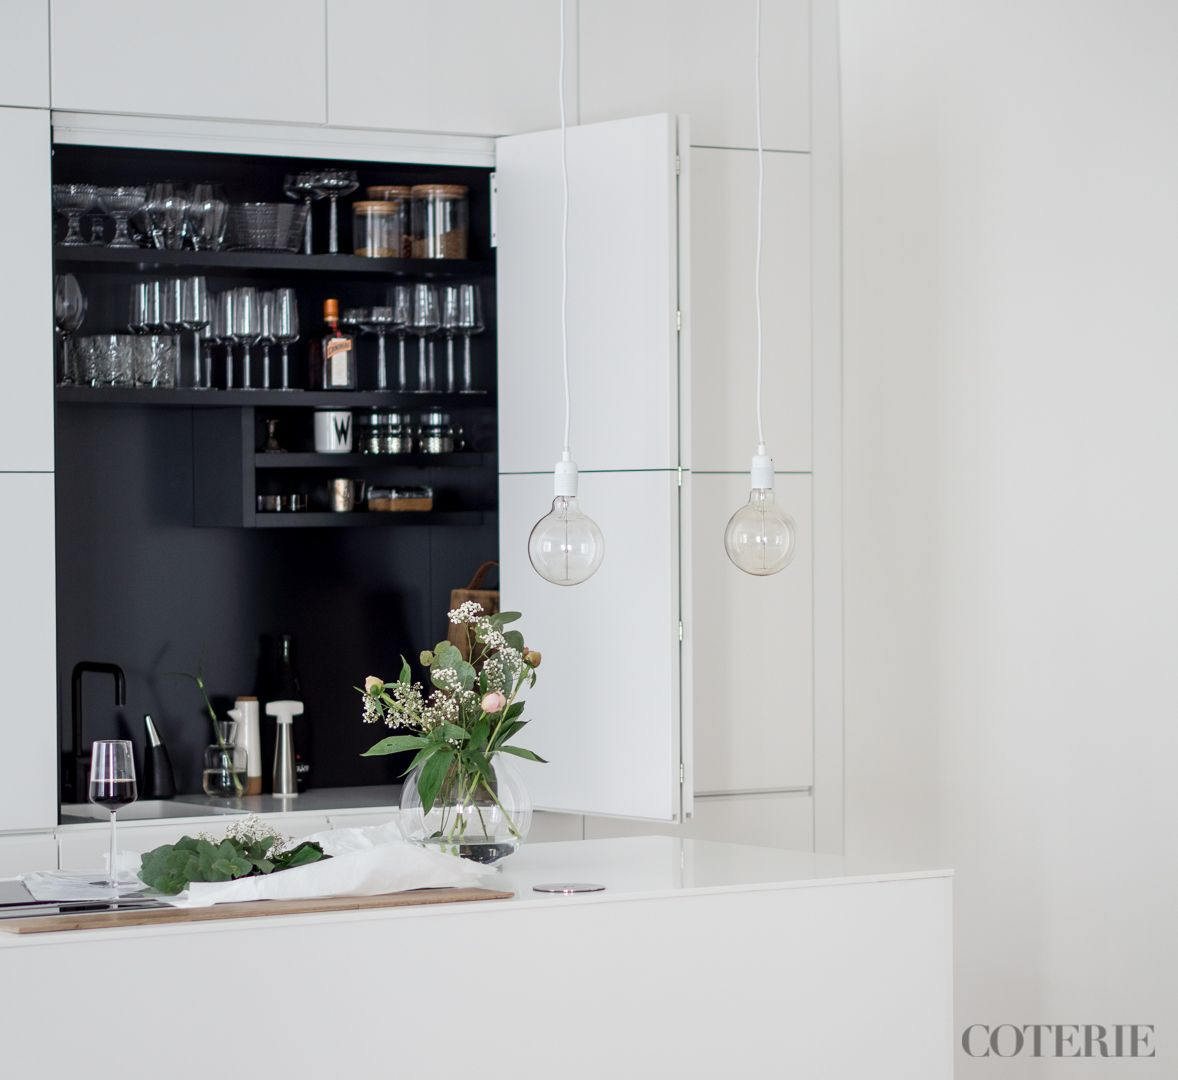 Welcome to our kitchen — Coterie